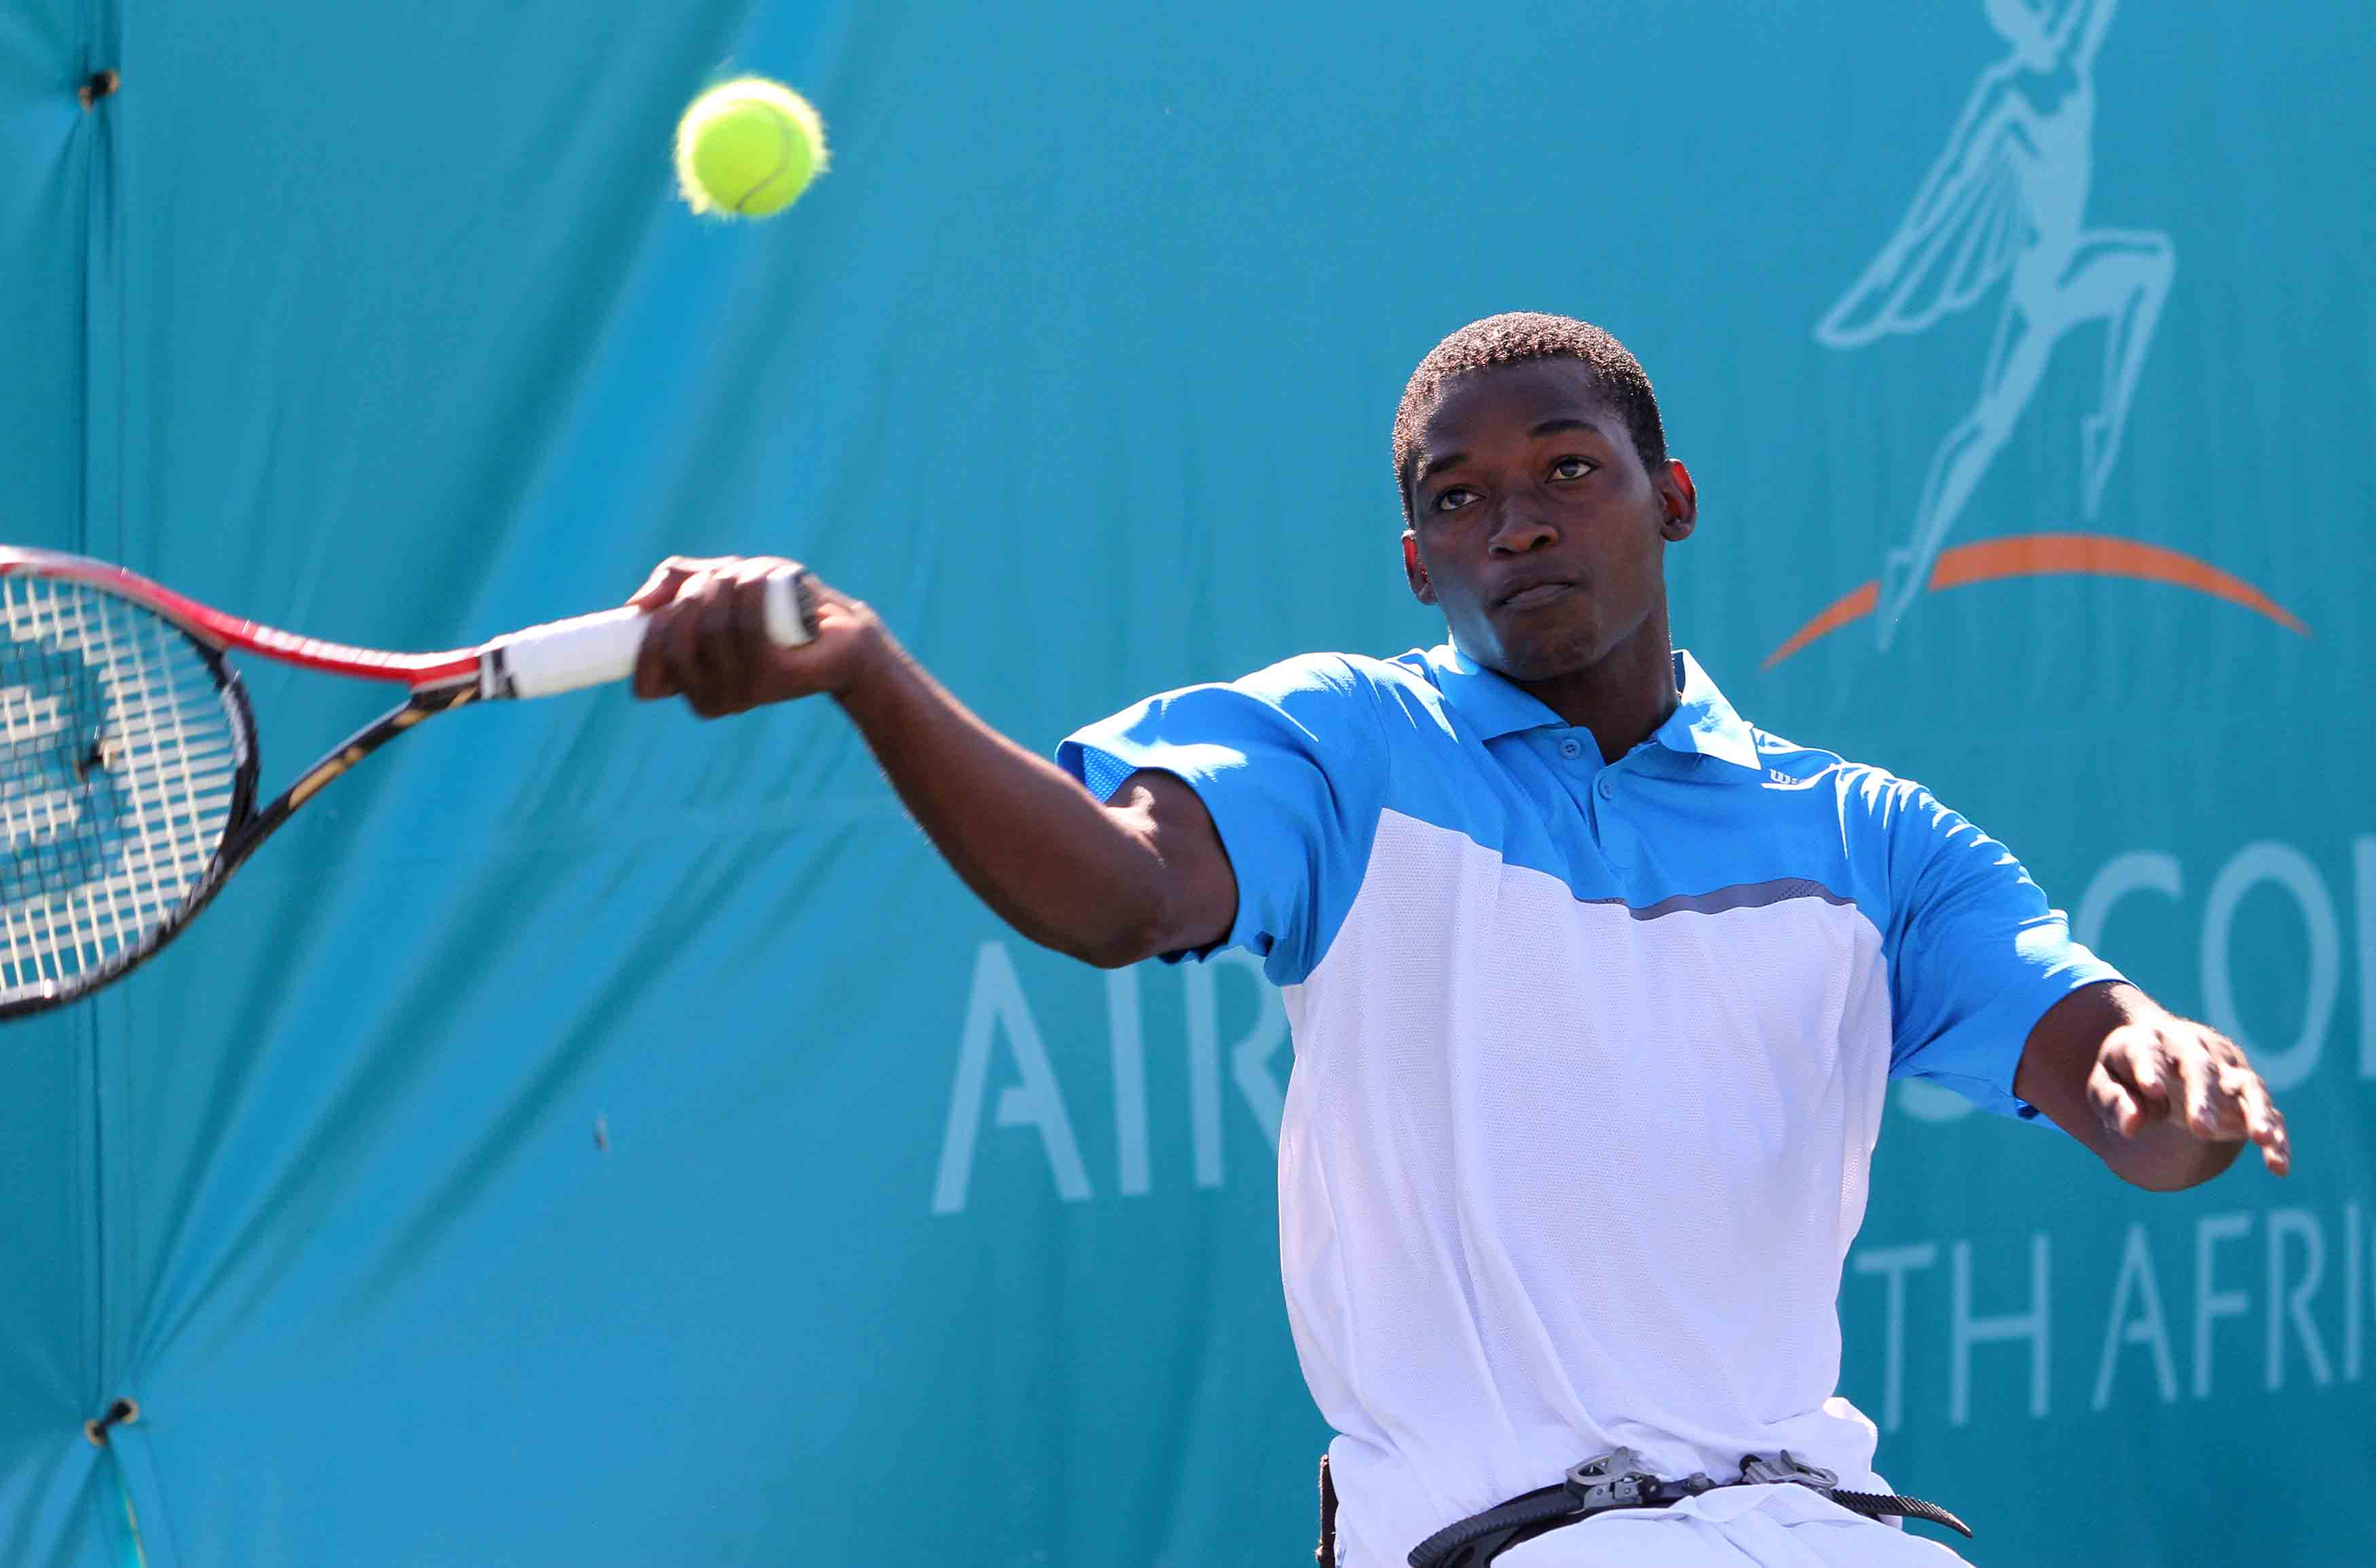 Paralympian Maripa ends fourth in Doubles Masters